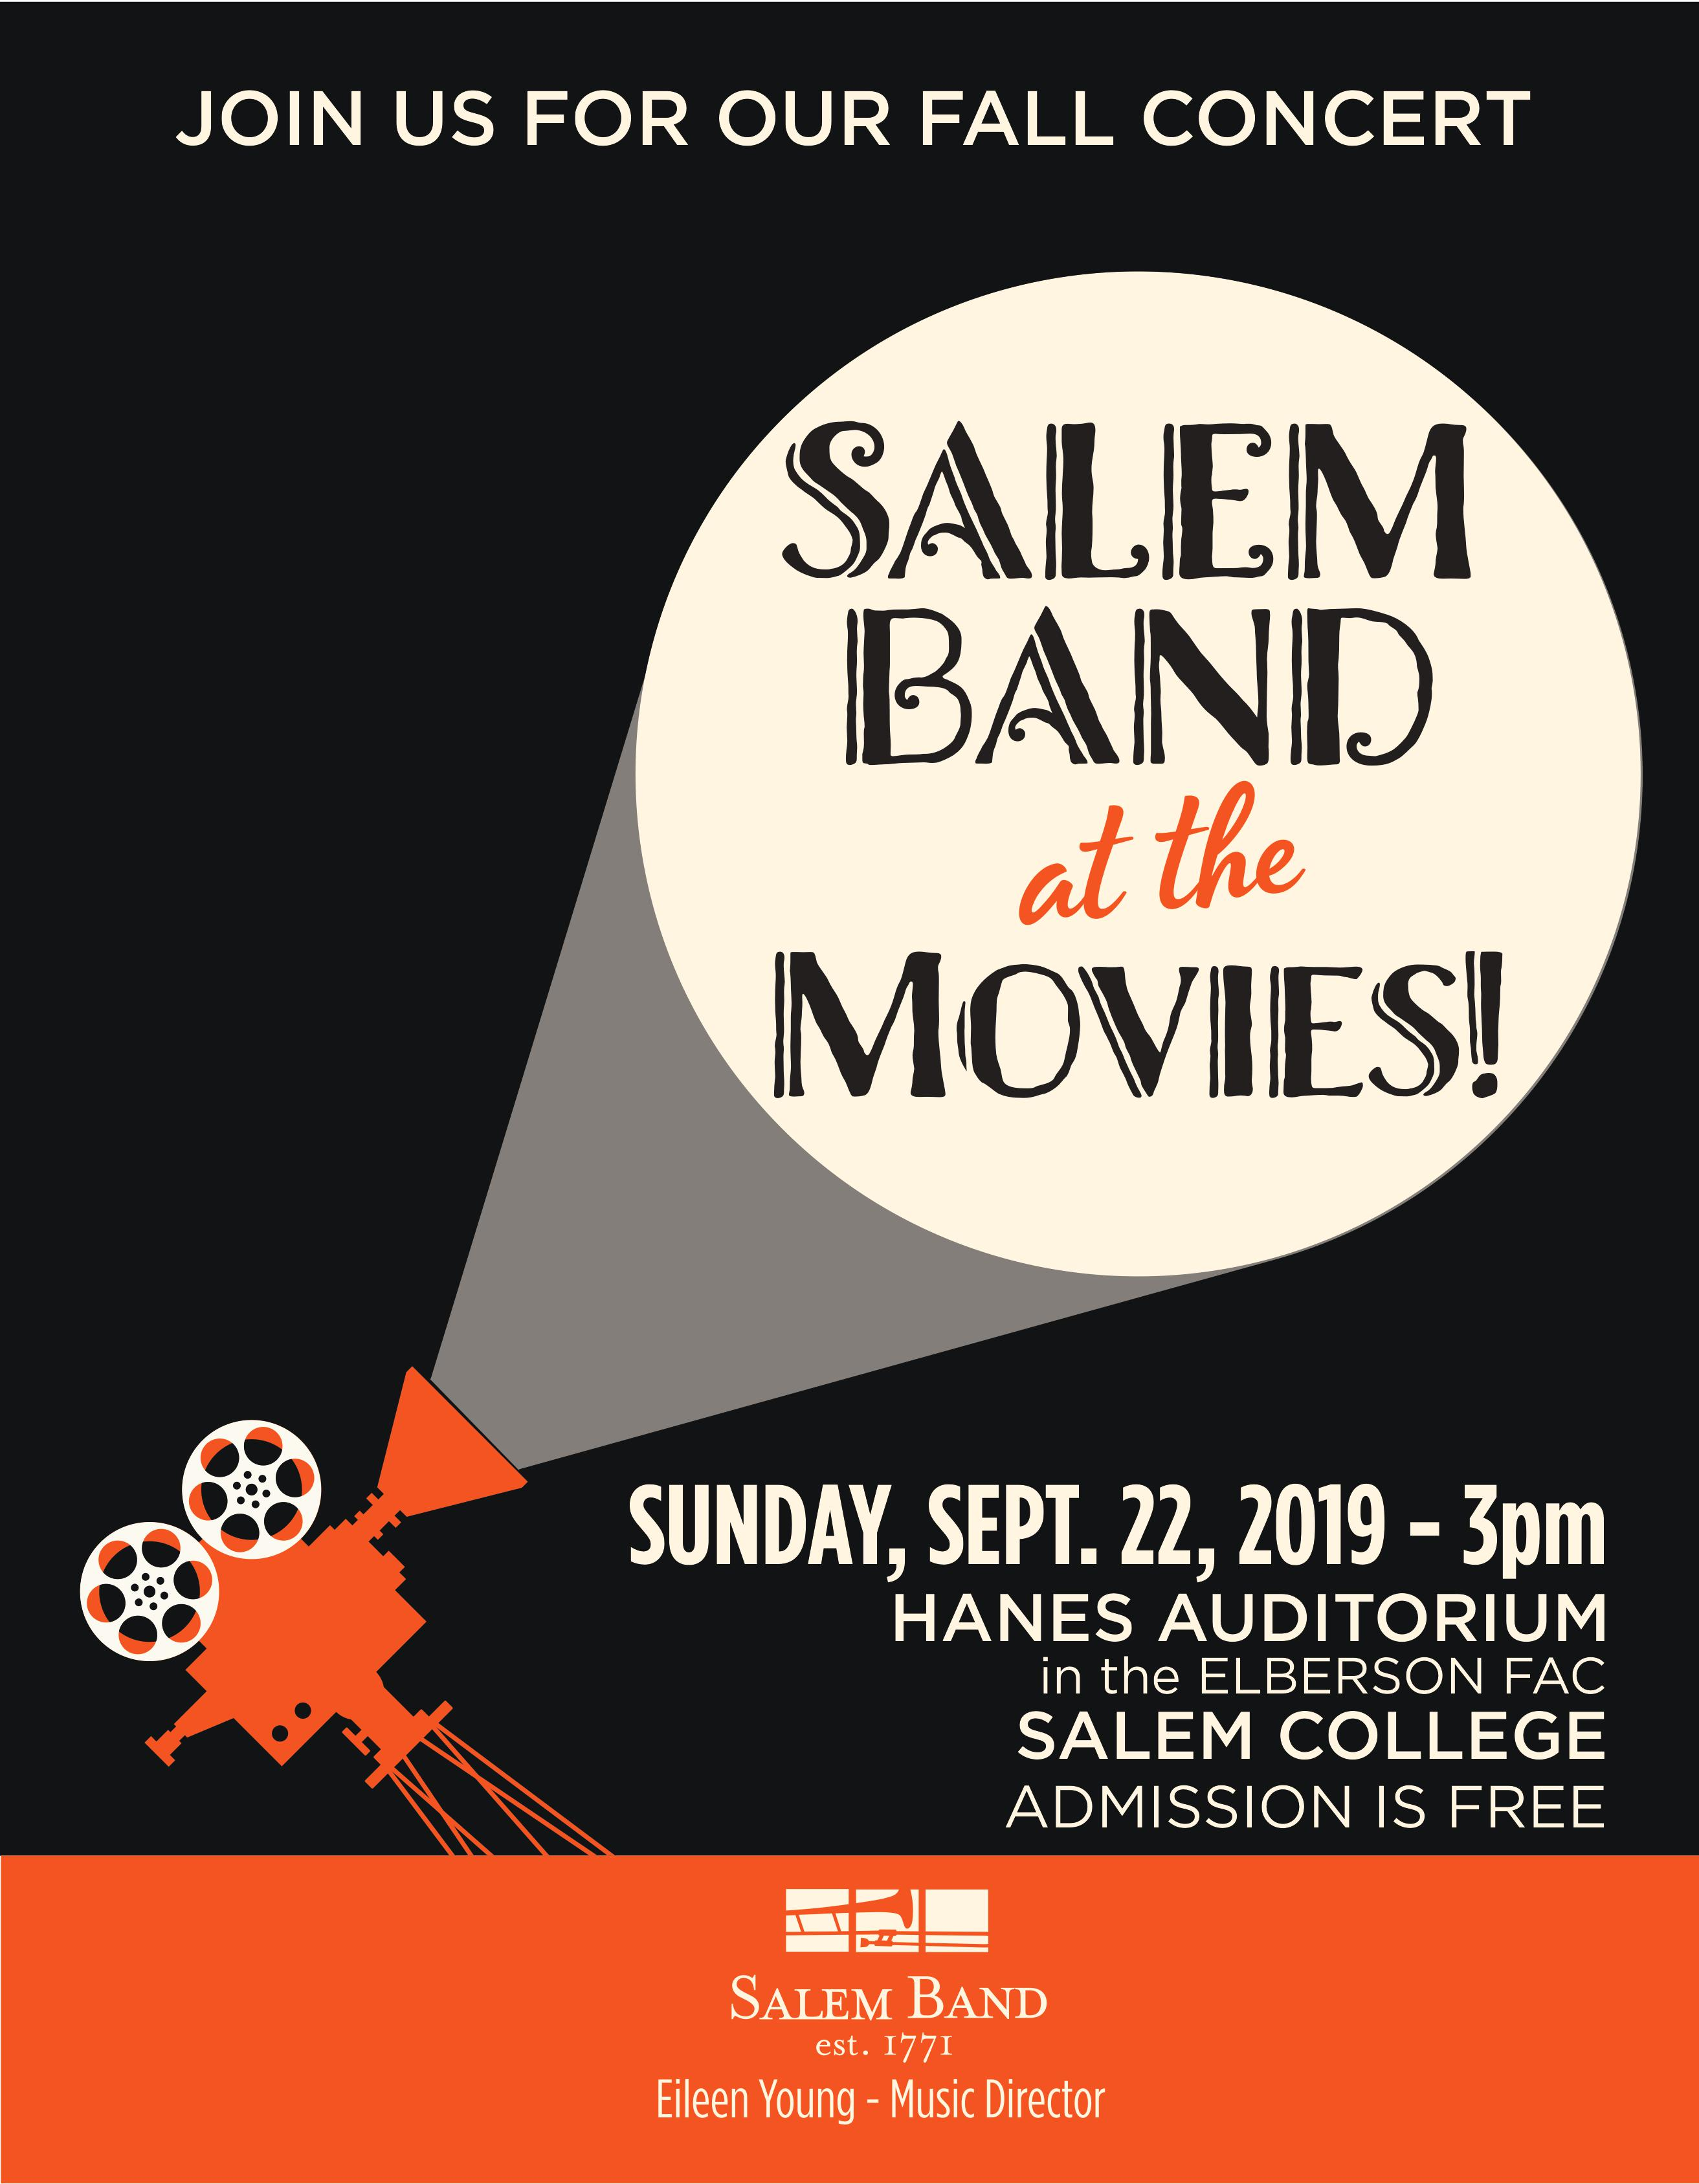 Salem Band at the Movies Fall 2019 Concert Flyer, see page for details